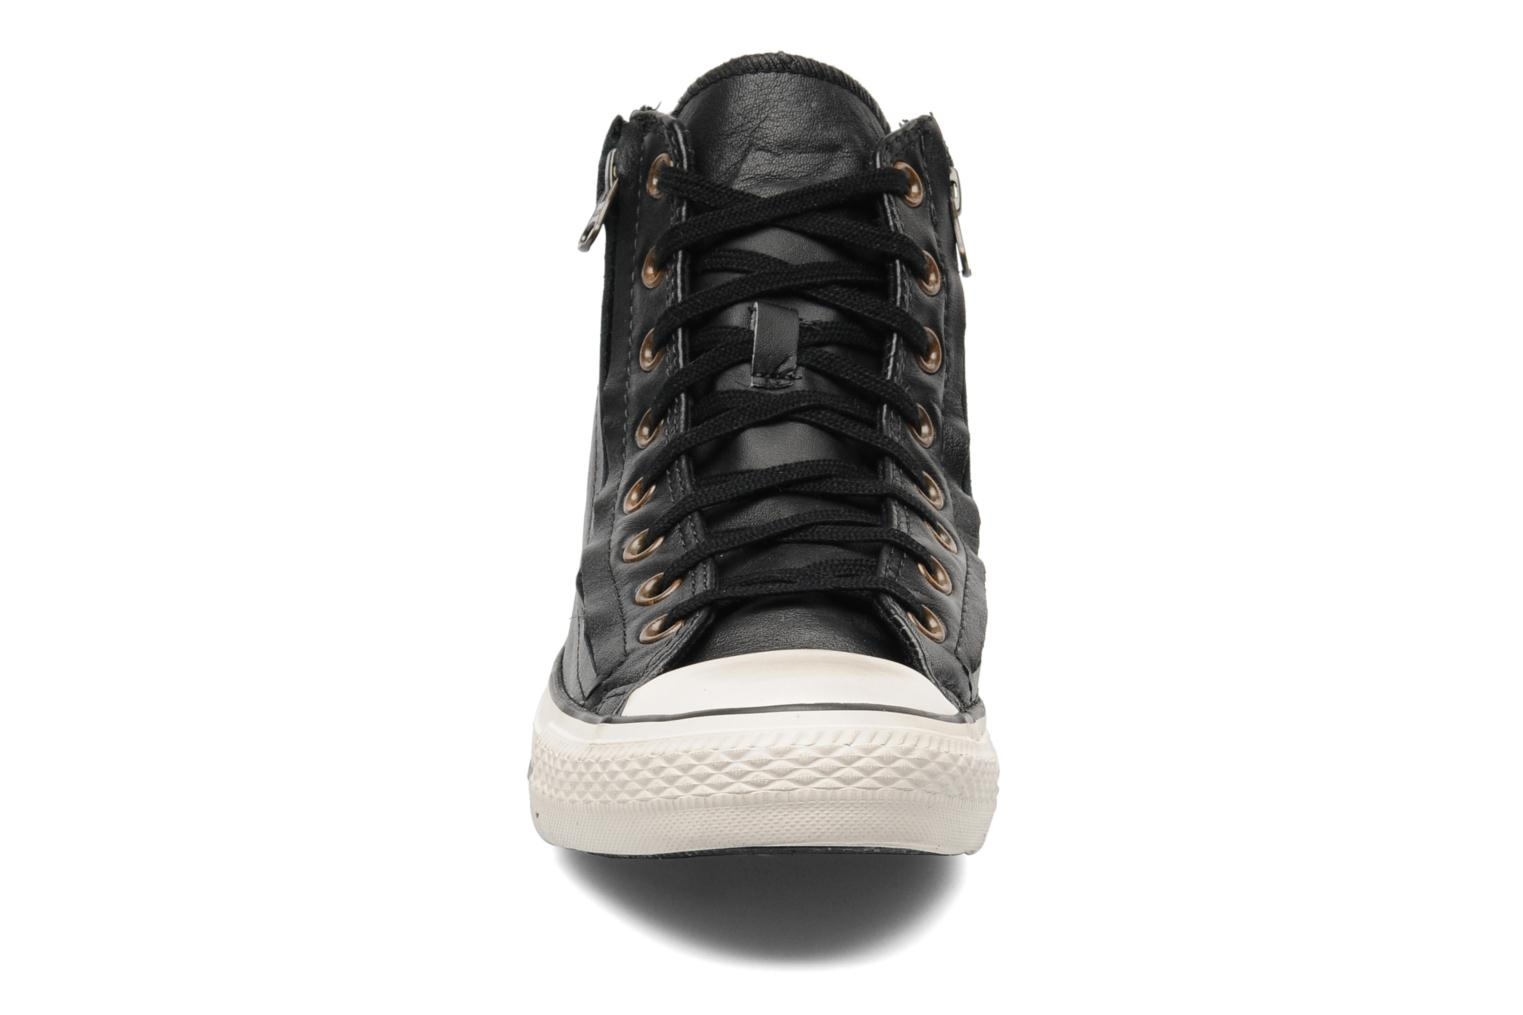 Baskets Converse Chuck Taylor All Star Rc Leather Double Zip Hi M Noir vue portées chaussures